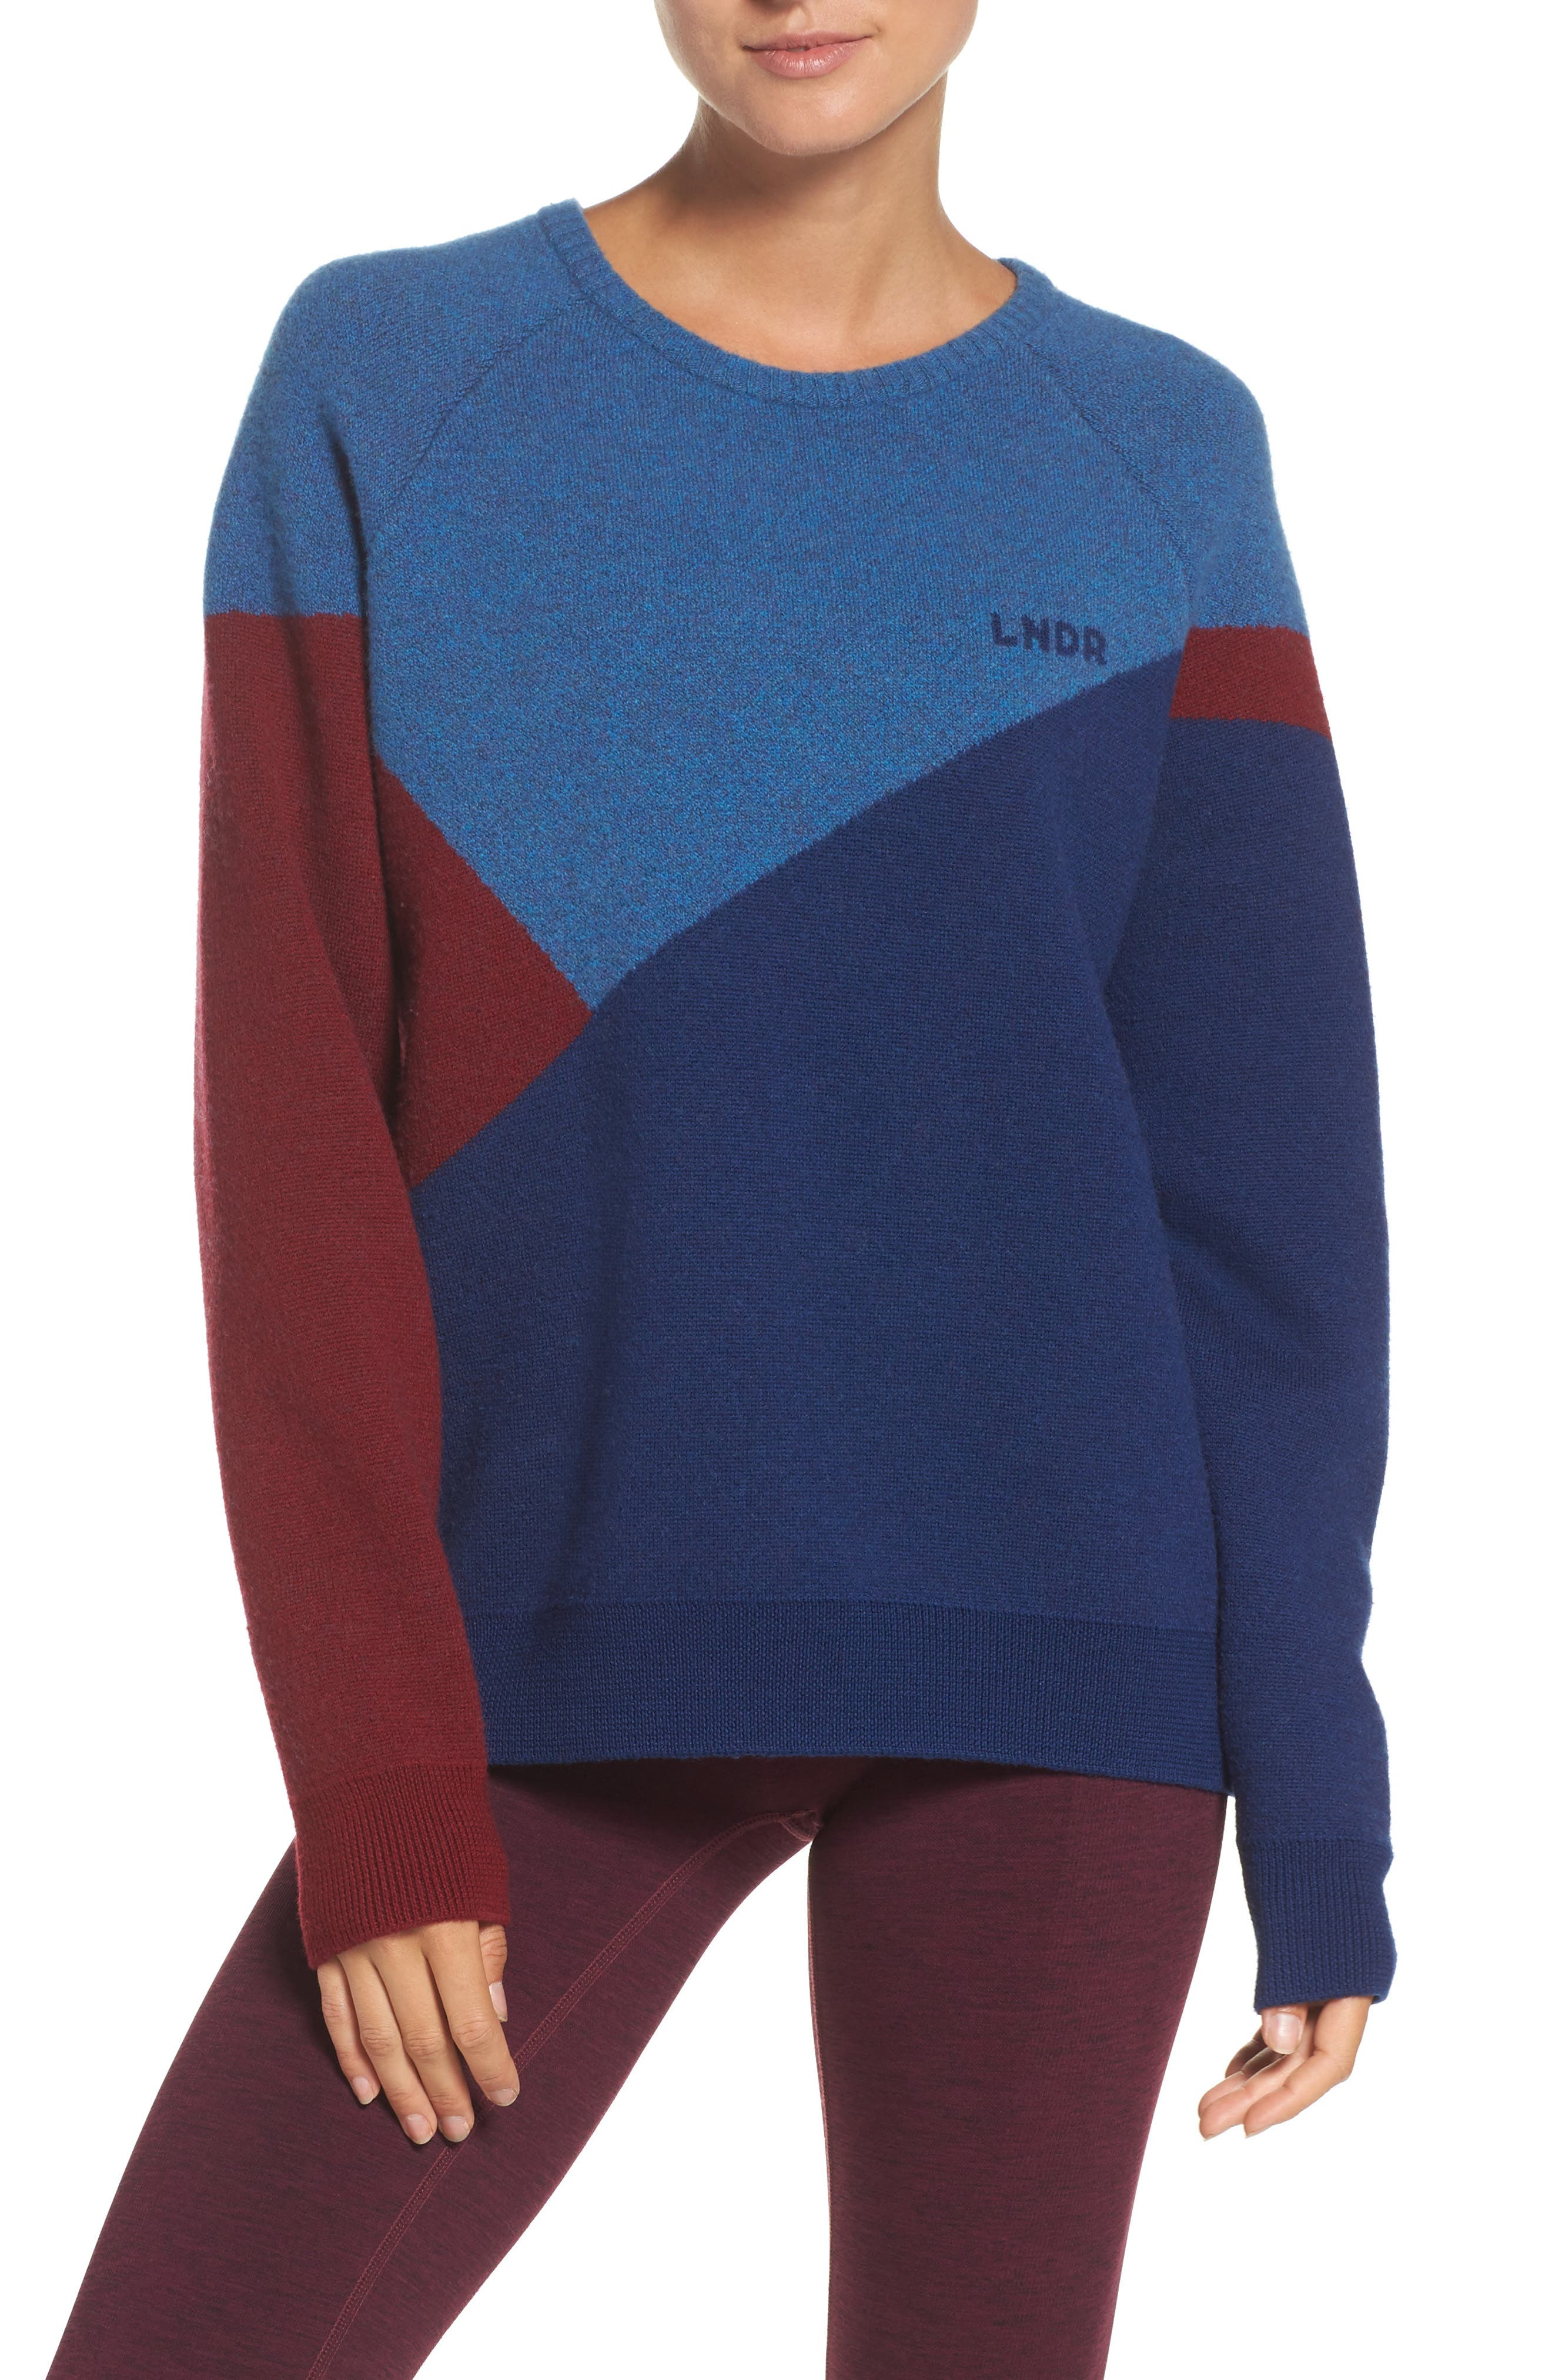 Winter Waterboy Sweater,                             Main thumbnail 1, color,                             Burgundy